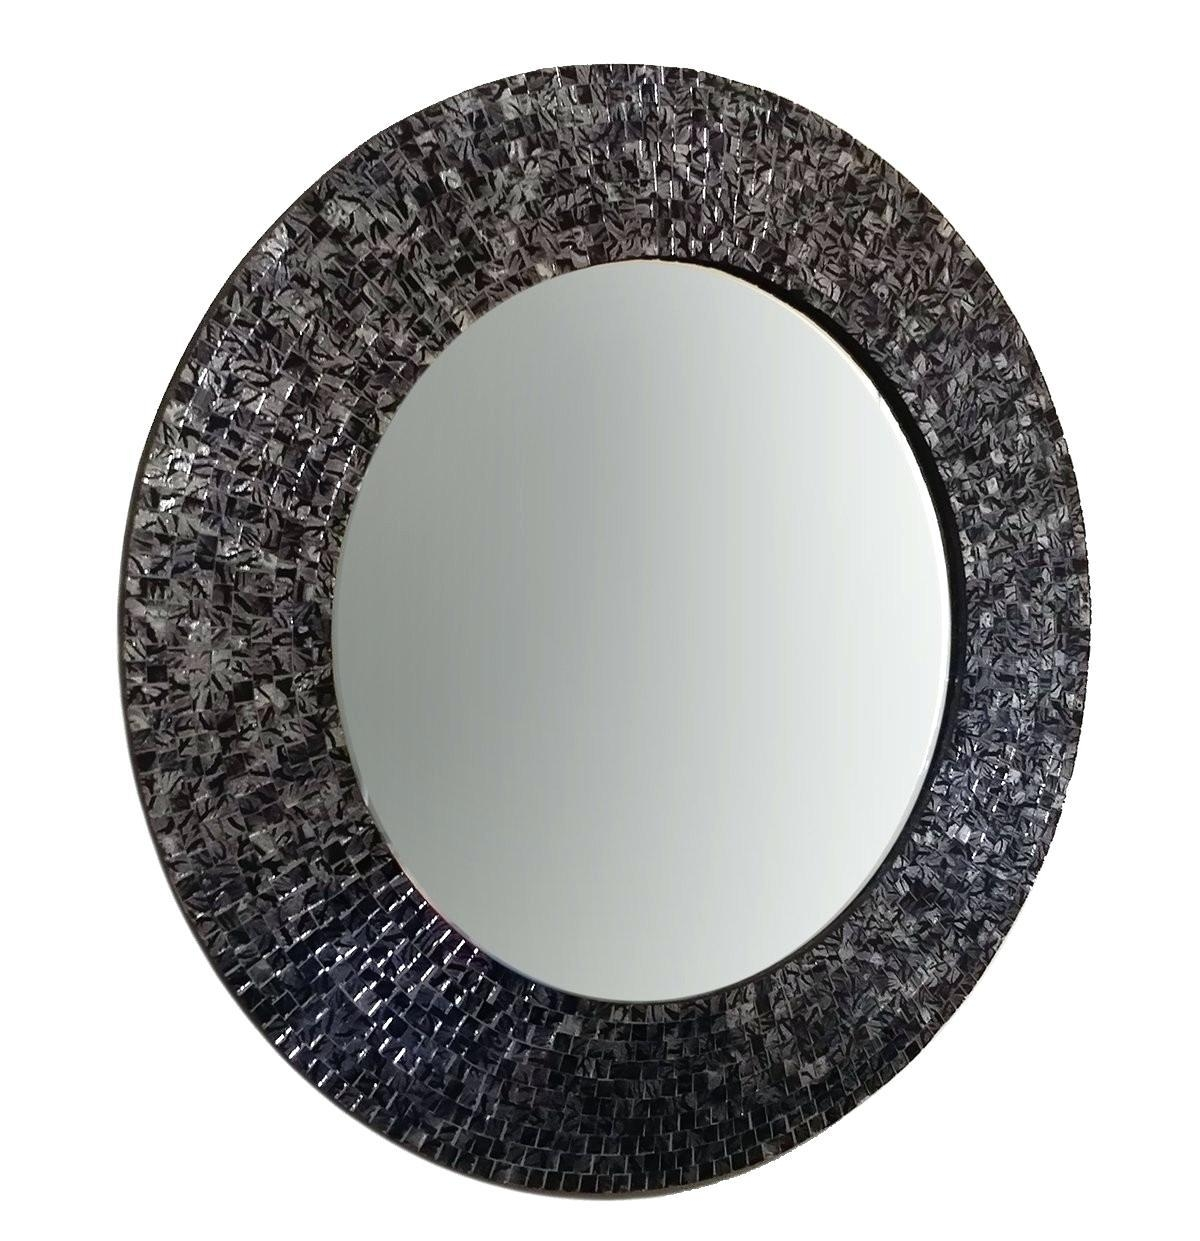 Mosaic Mirror Wall Tiles Large Round – Shopwiz For Round Mosaic Mirrors (Image 11 of 20)